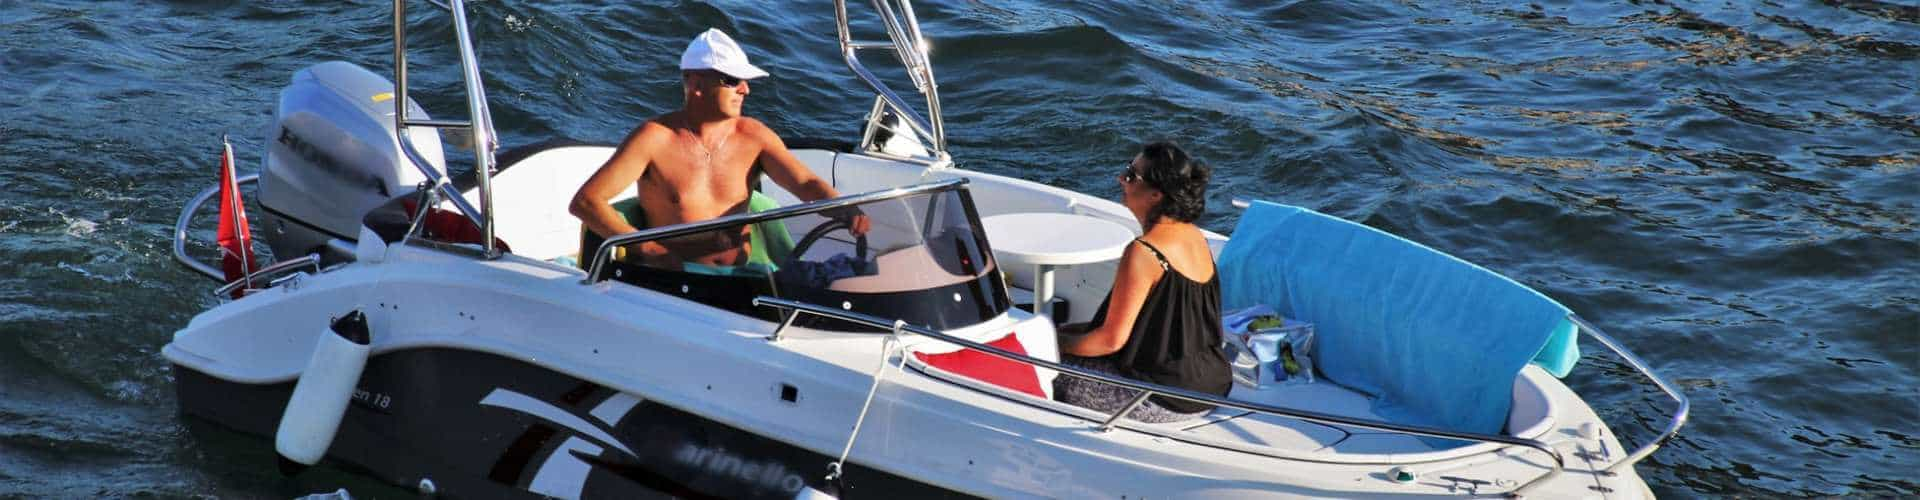 hire a boat gran canaria without a license